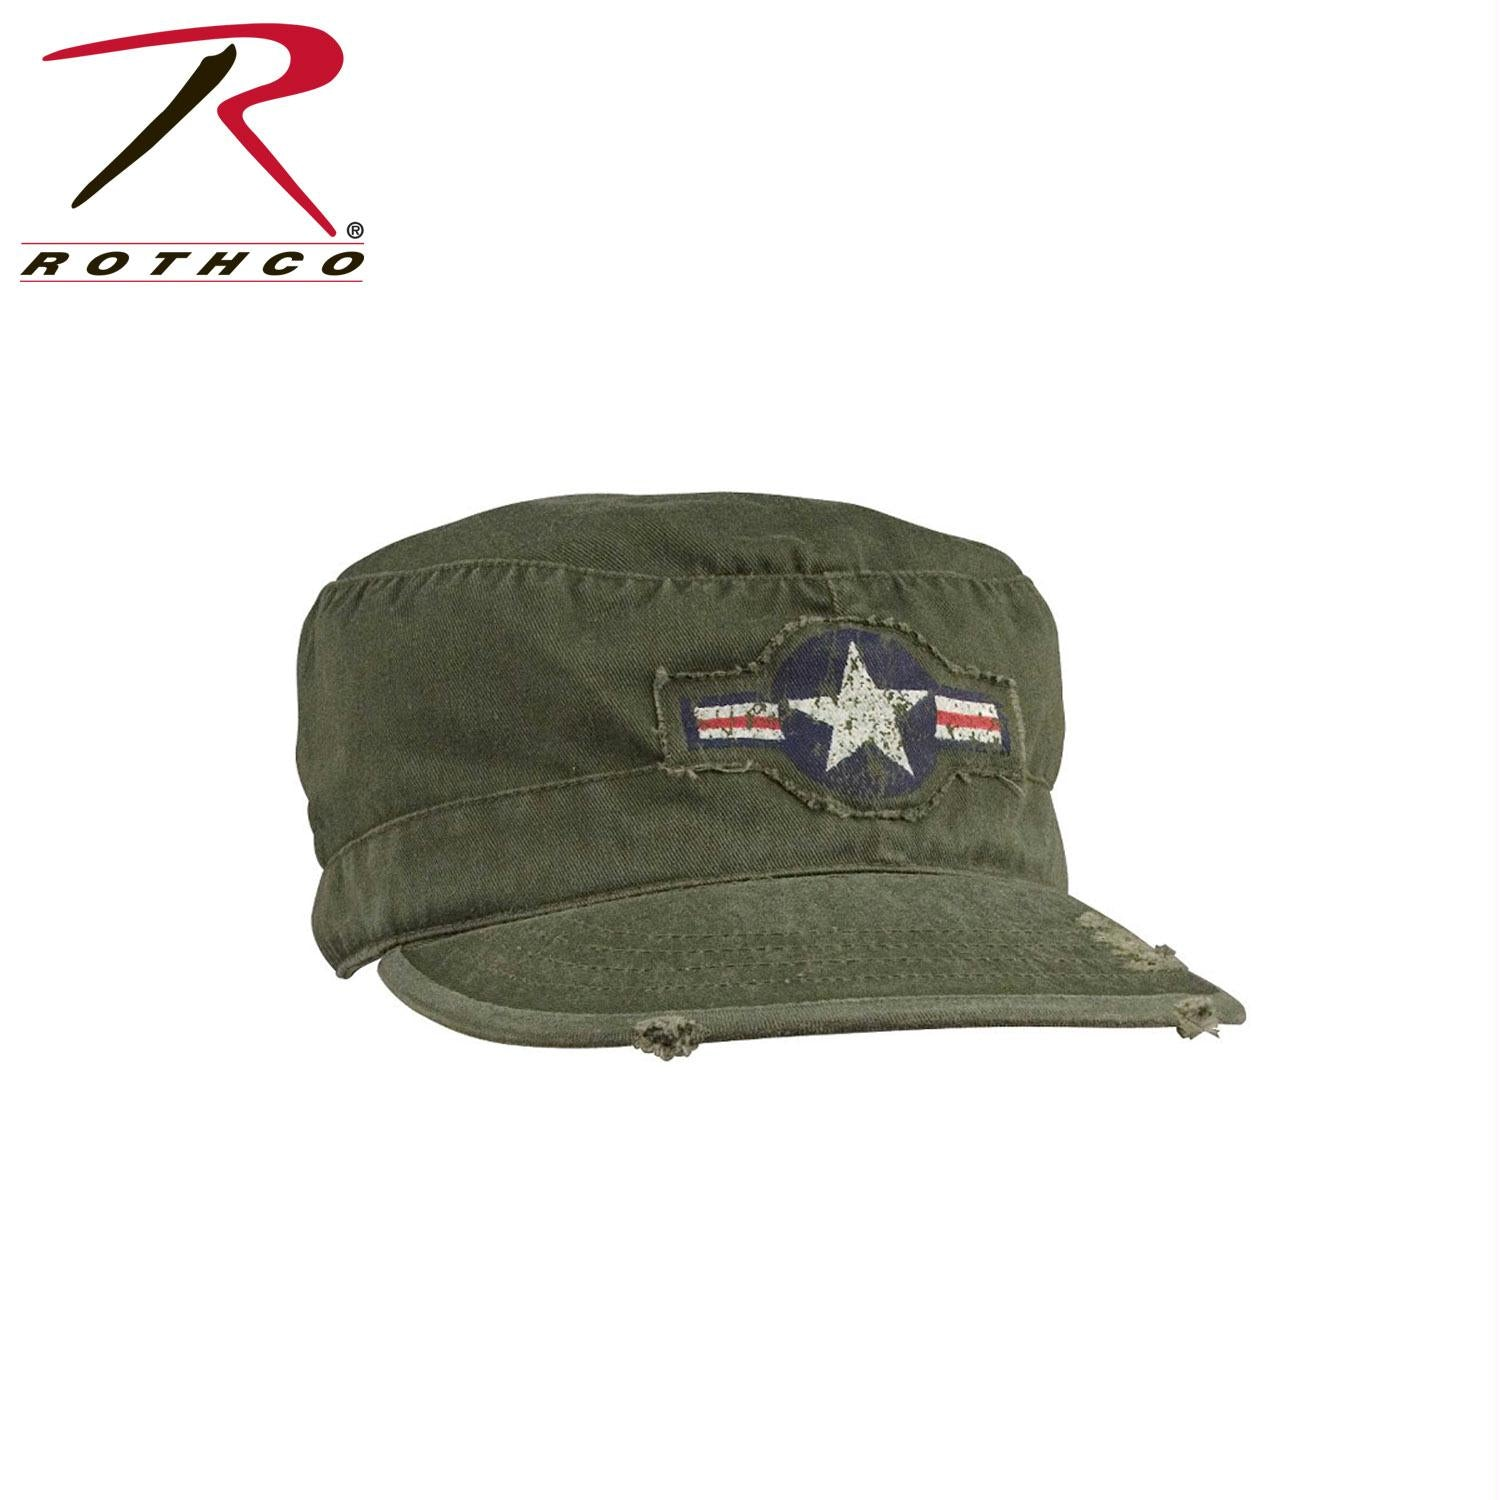 Rothco Vintage Air Corps Fatigue Cap - L